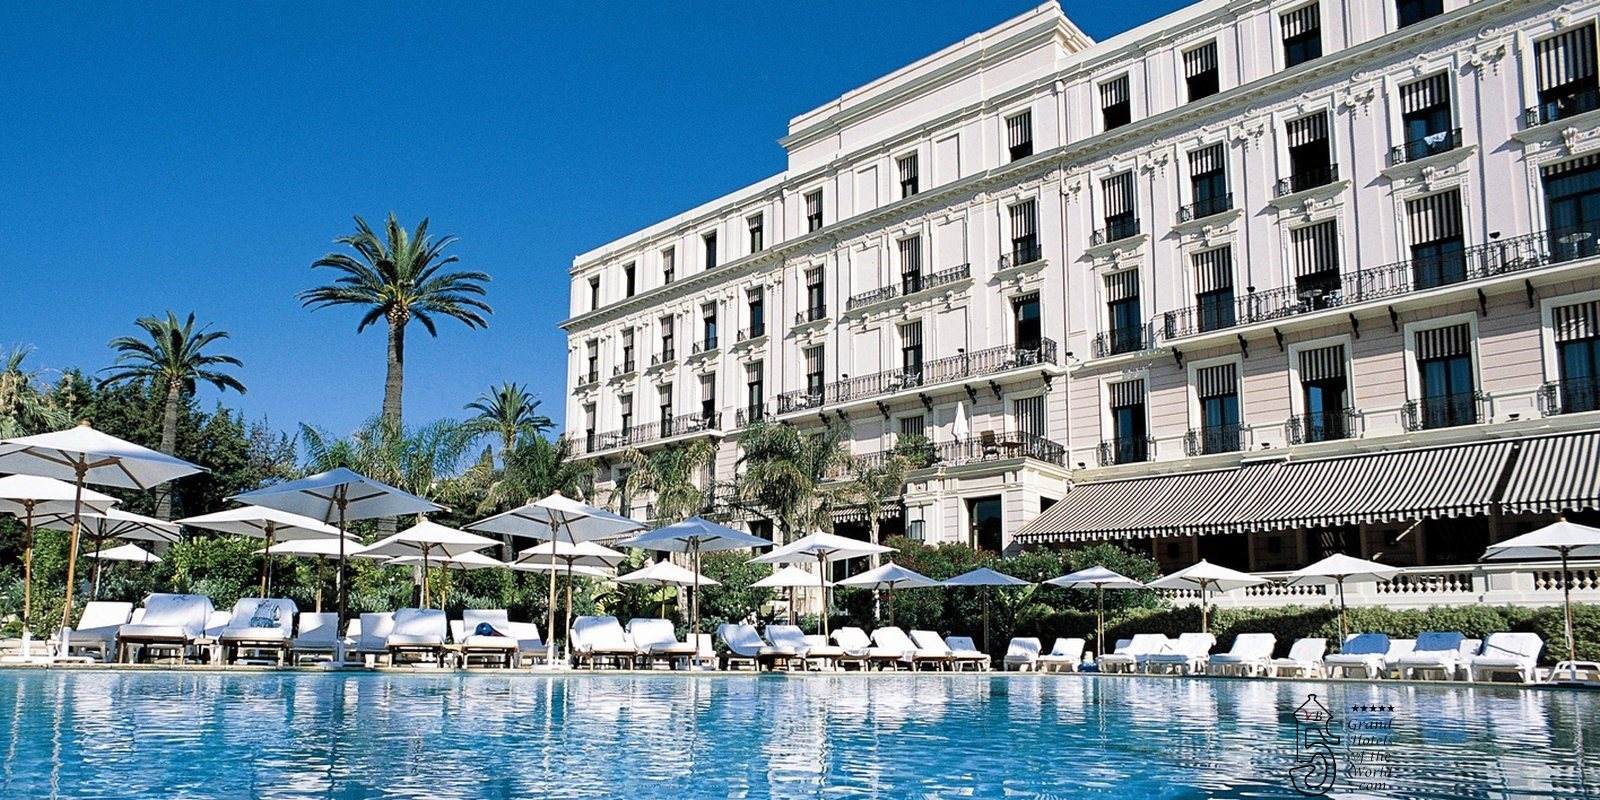 Hotel Royal Riviera in Saint Jean Cap Ferrat